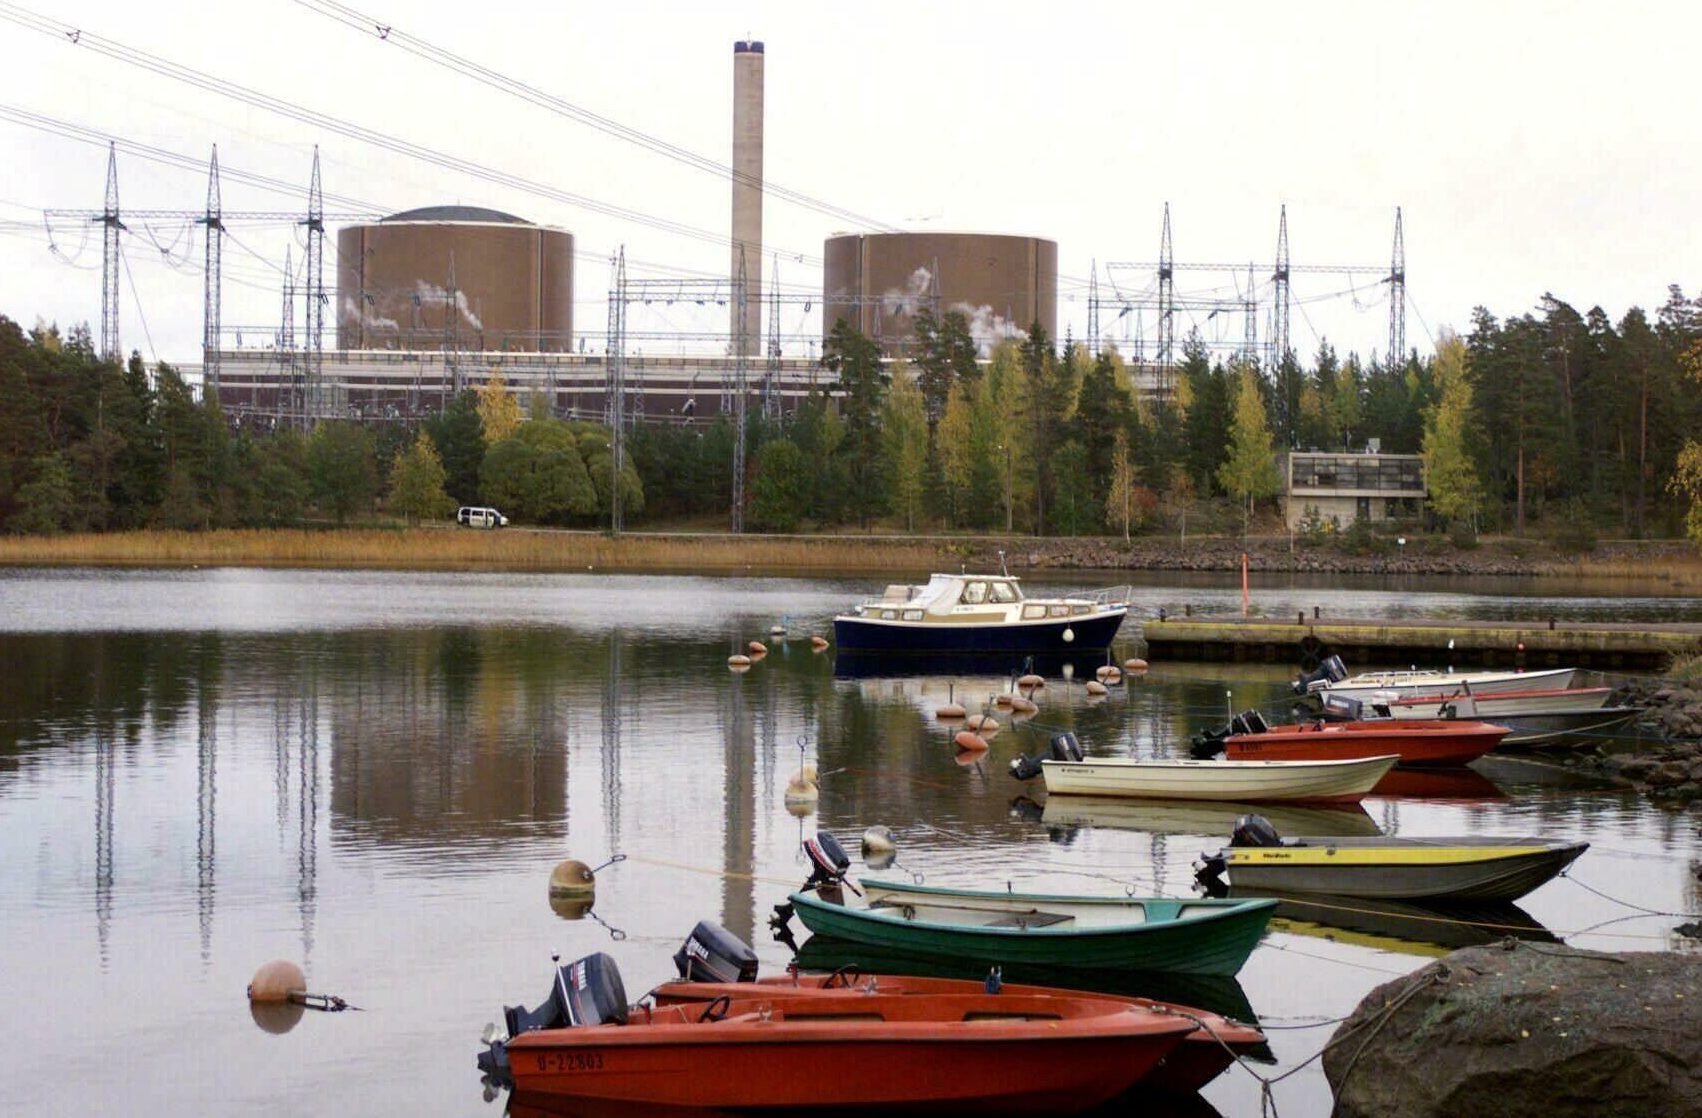 The Loviisa, southern Finland nuclear power station is pictured Tuesday, October 5, 1999. Hydrogen gas escaped momentarily into the atmosphere at the nuclear power station Tuesday, in southern Finland, but caused no radiation or danger to the surrounding area, nuclear safety officials said. The leak happened when empty hydrogen gas containers were being replaced outside at the Loviisa plant, some 100 kilometers (60 miles) east of Helsinki.